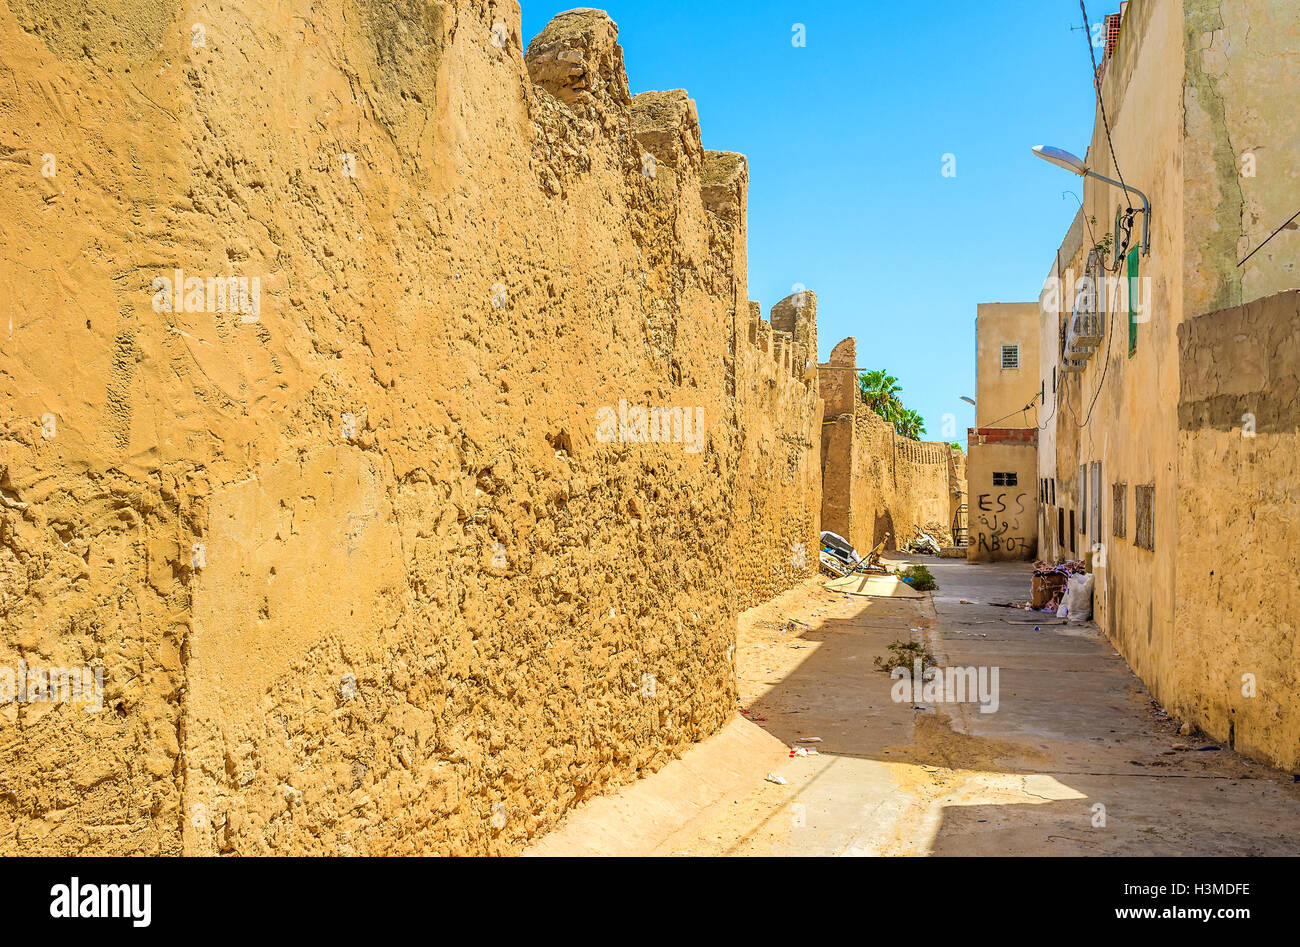 The old Sfax is the typical medieval arabic town with well preserved ramparts, narrow streets and old houses, Tunisia. - Stock Image